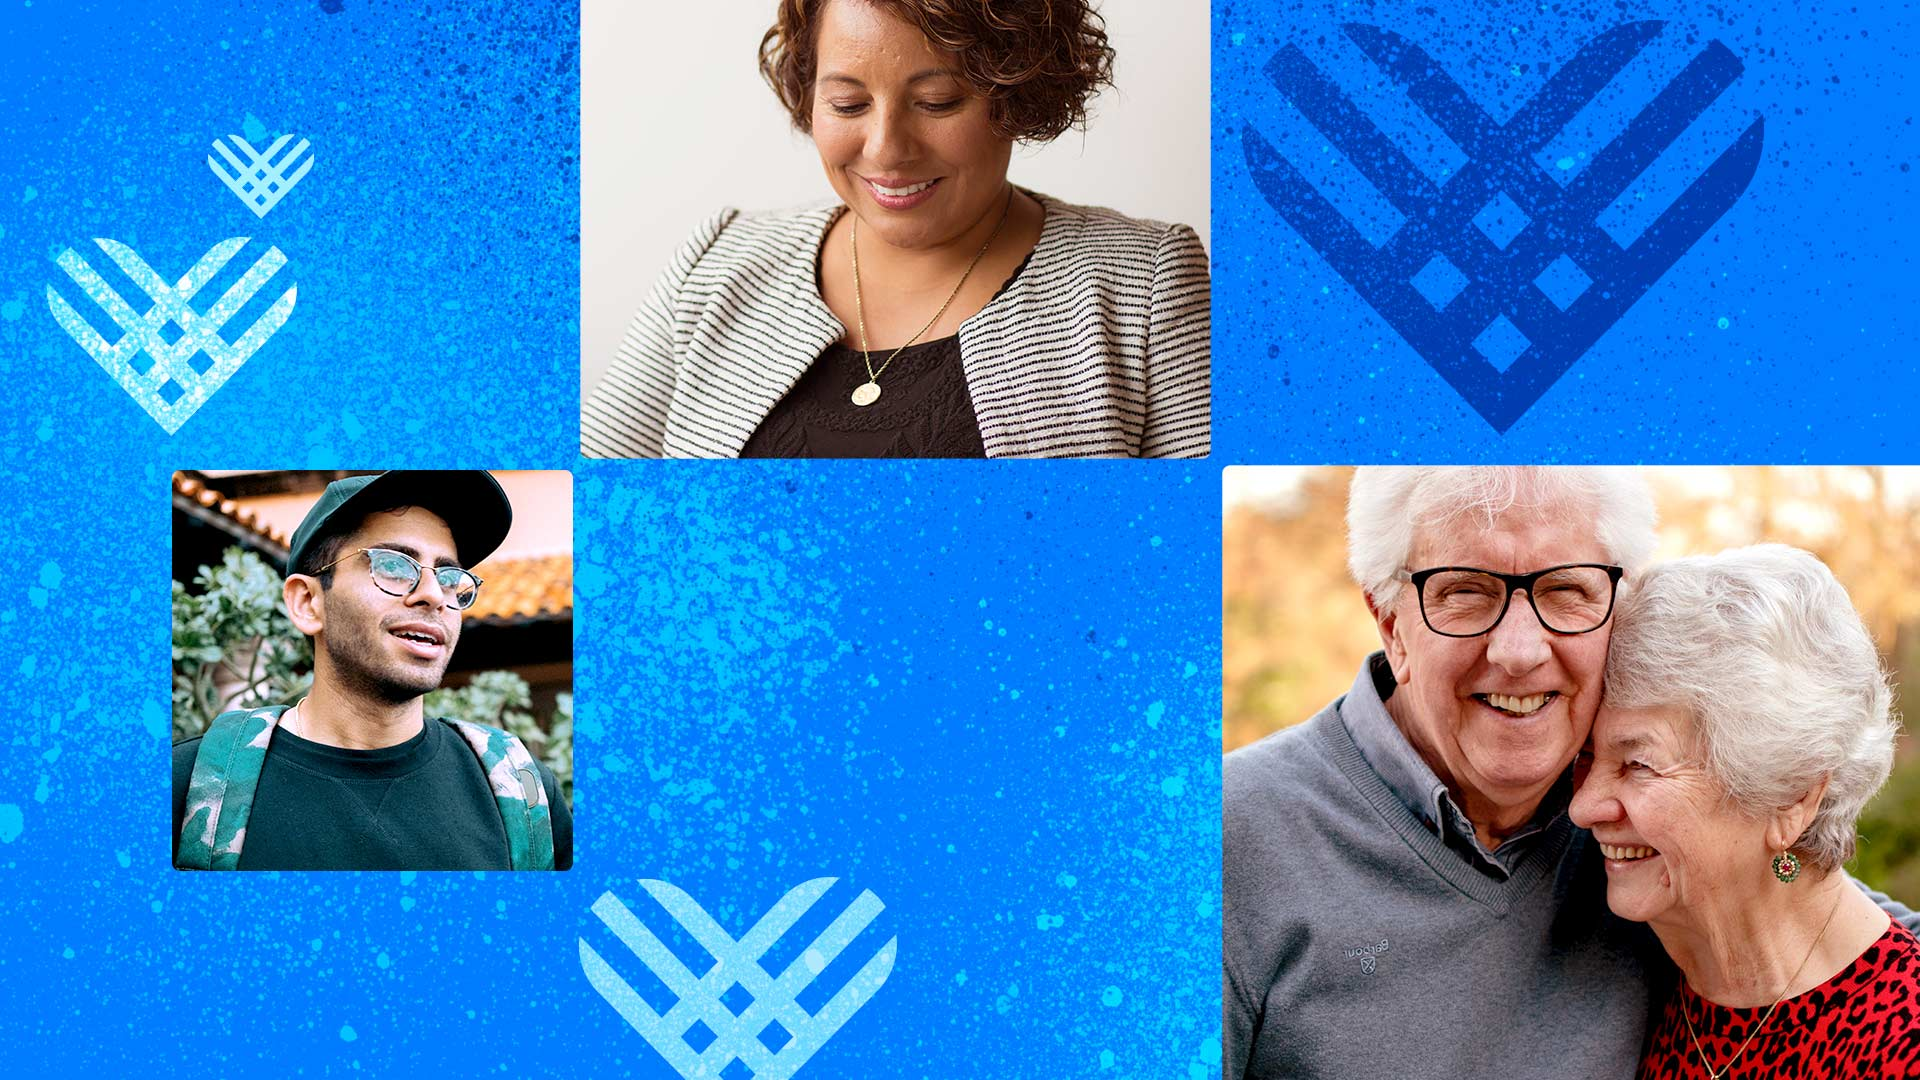 Giving Tuesday hearts surround profile photos of happy peer-to-peer fundraisers. Their photos are adjacent, showing how P2P connects one donor to another to grow your support.